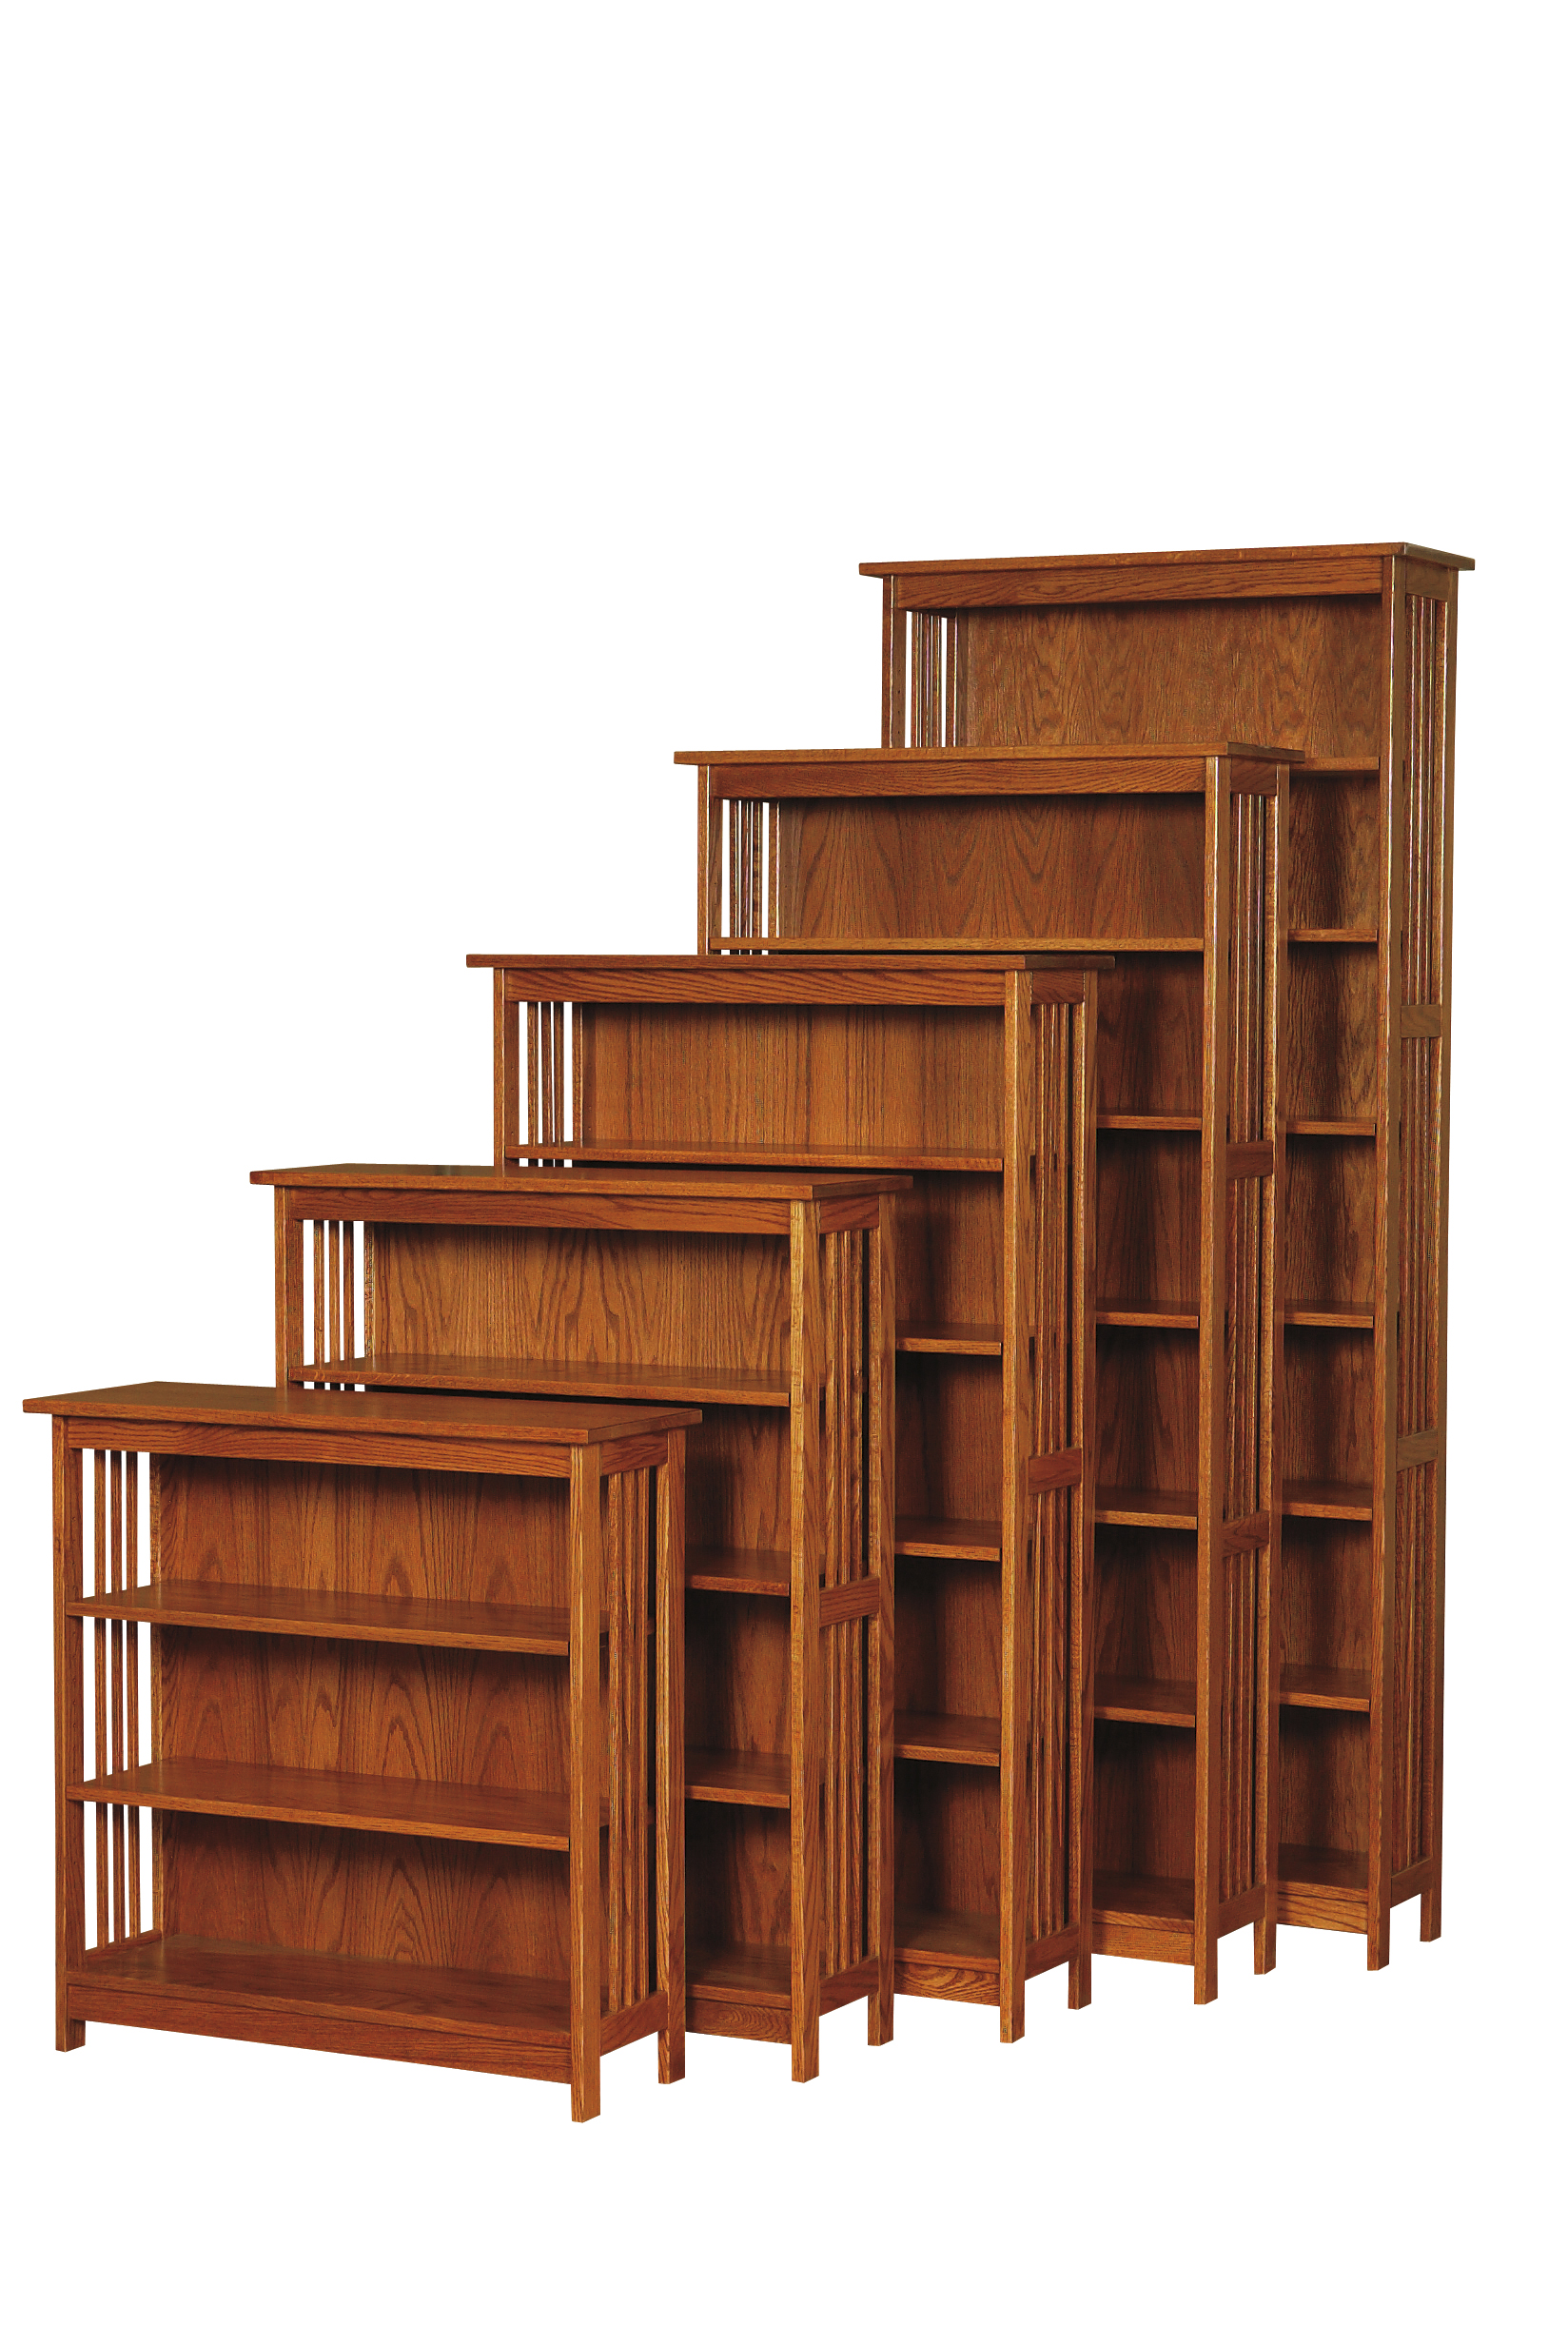 30 Quot W Country Mission Bookcase Amish Furniture